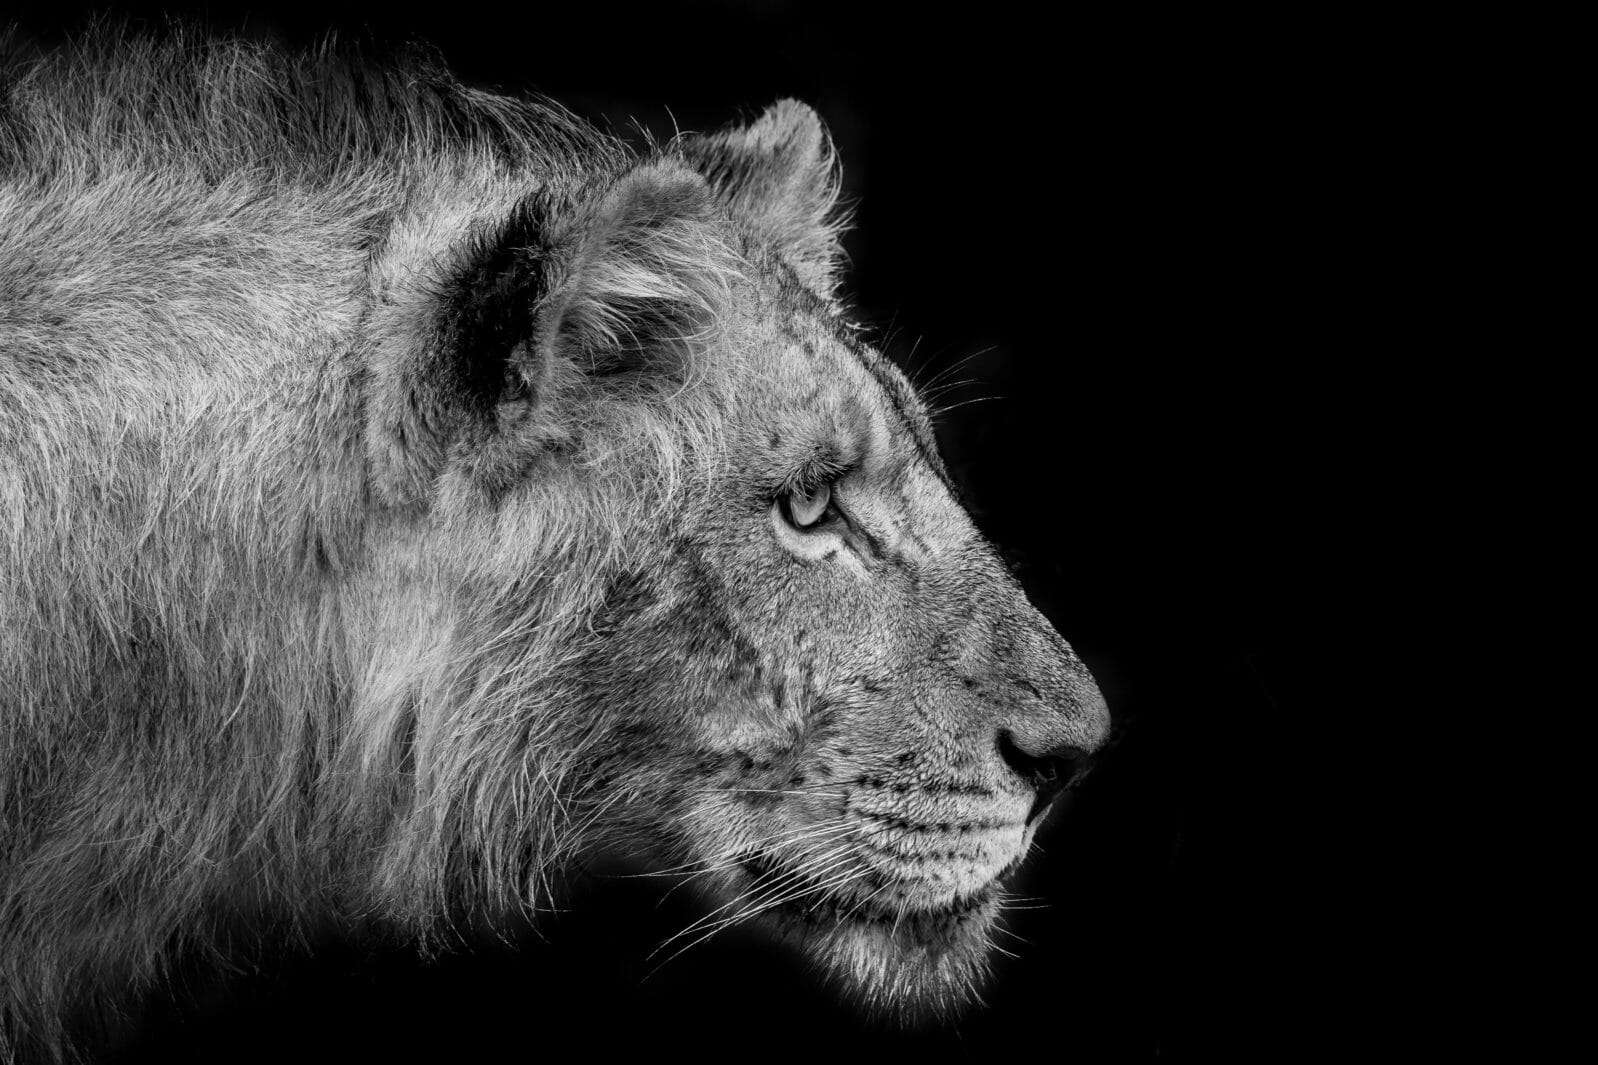 A sub adult male lion still fine tuning the art of hunting locks eyes on his target ahead instinct combined with years of nurture a black and white